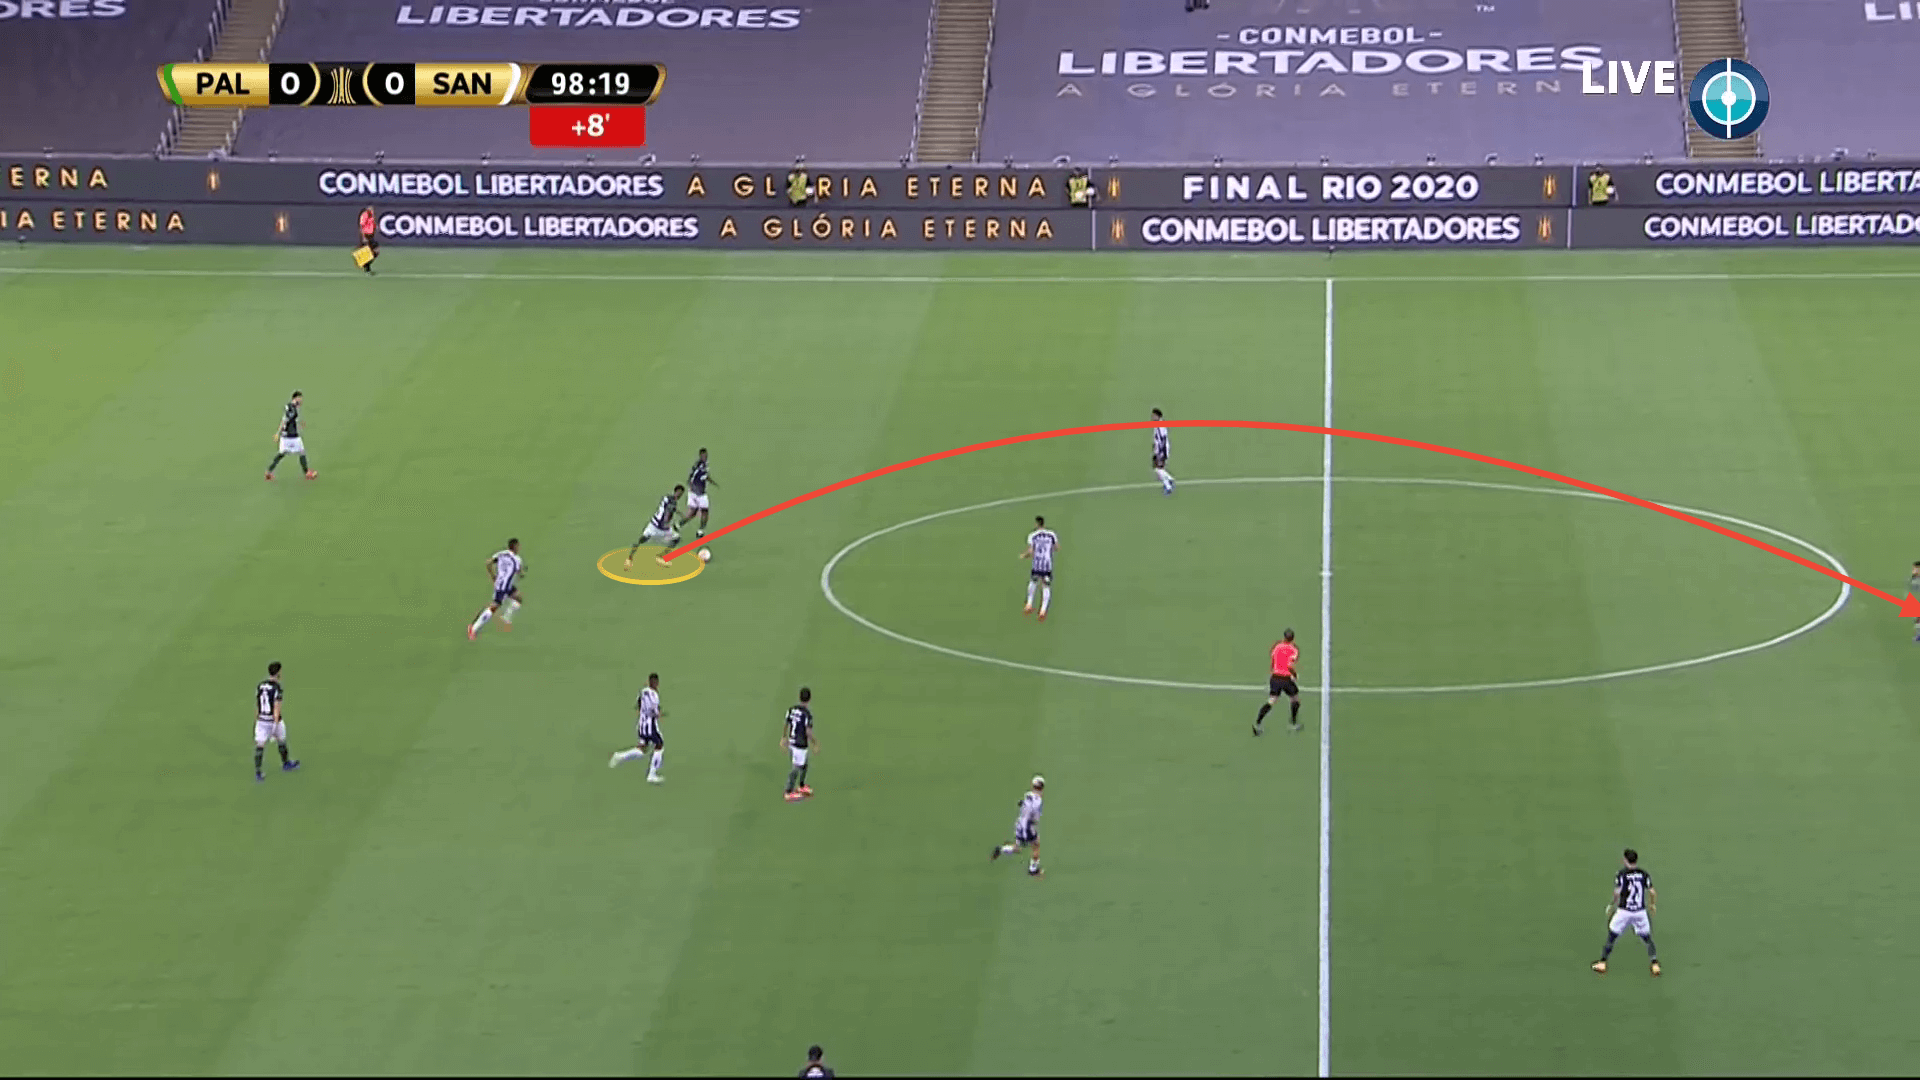 Insane intensity: Why the Santos press wasn't enough to win the Copa Libertadores - tactical analysis tactics